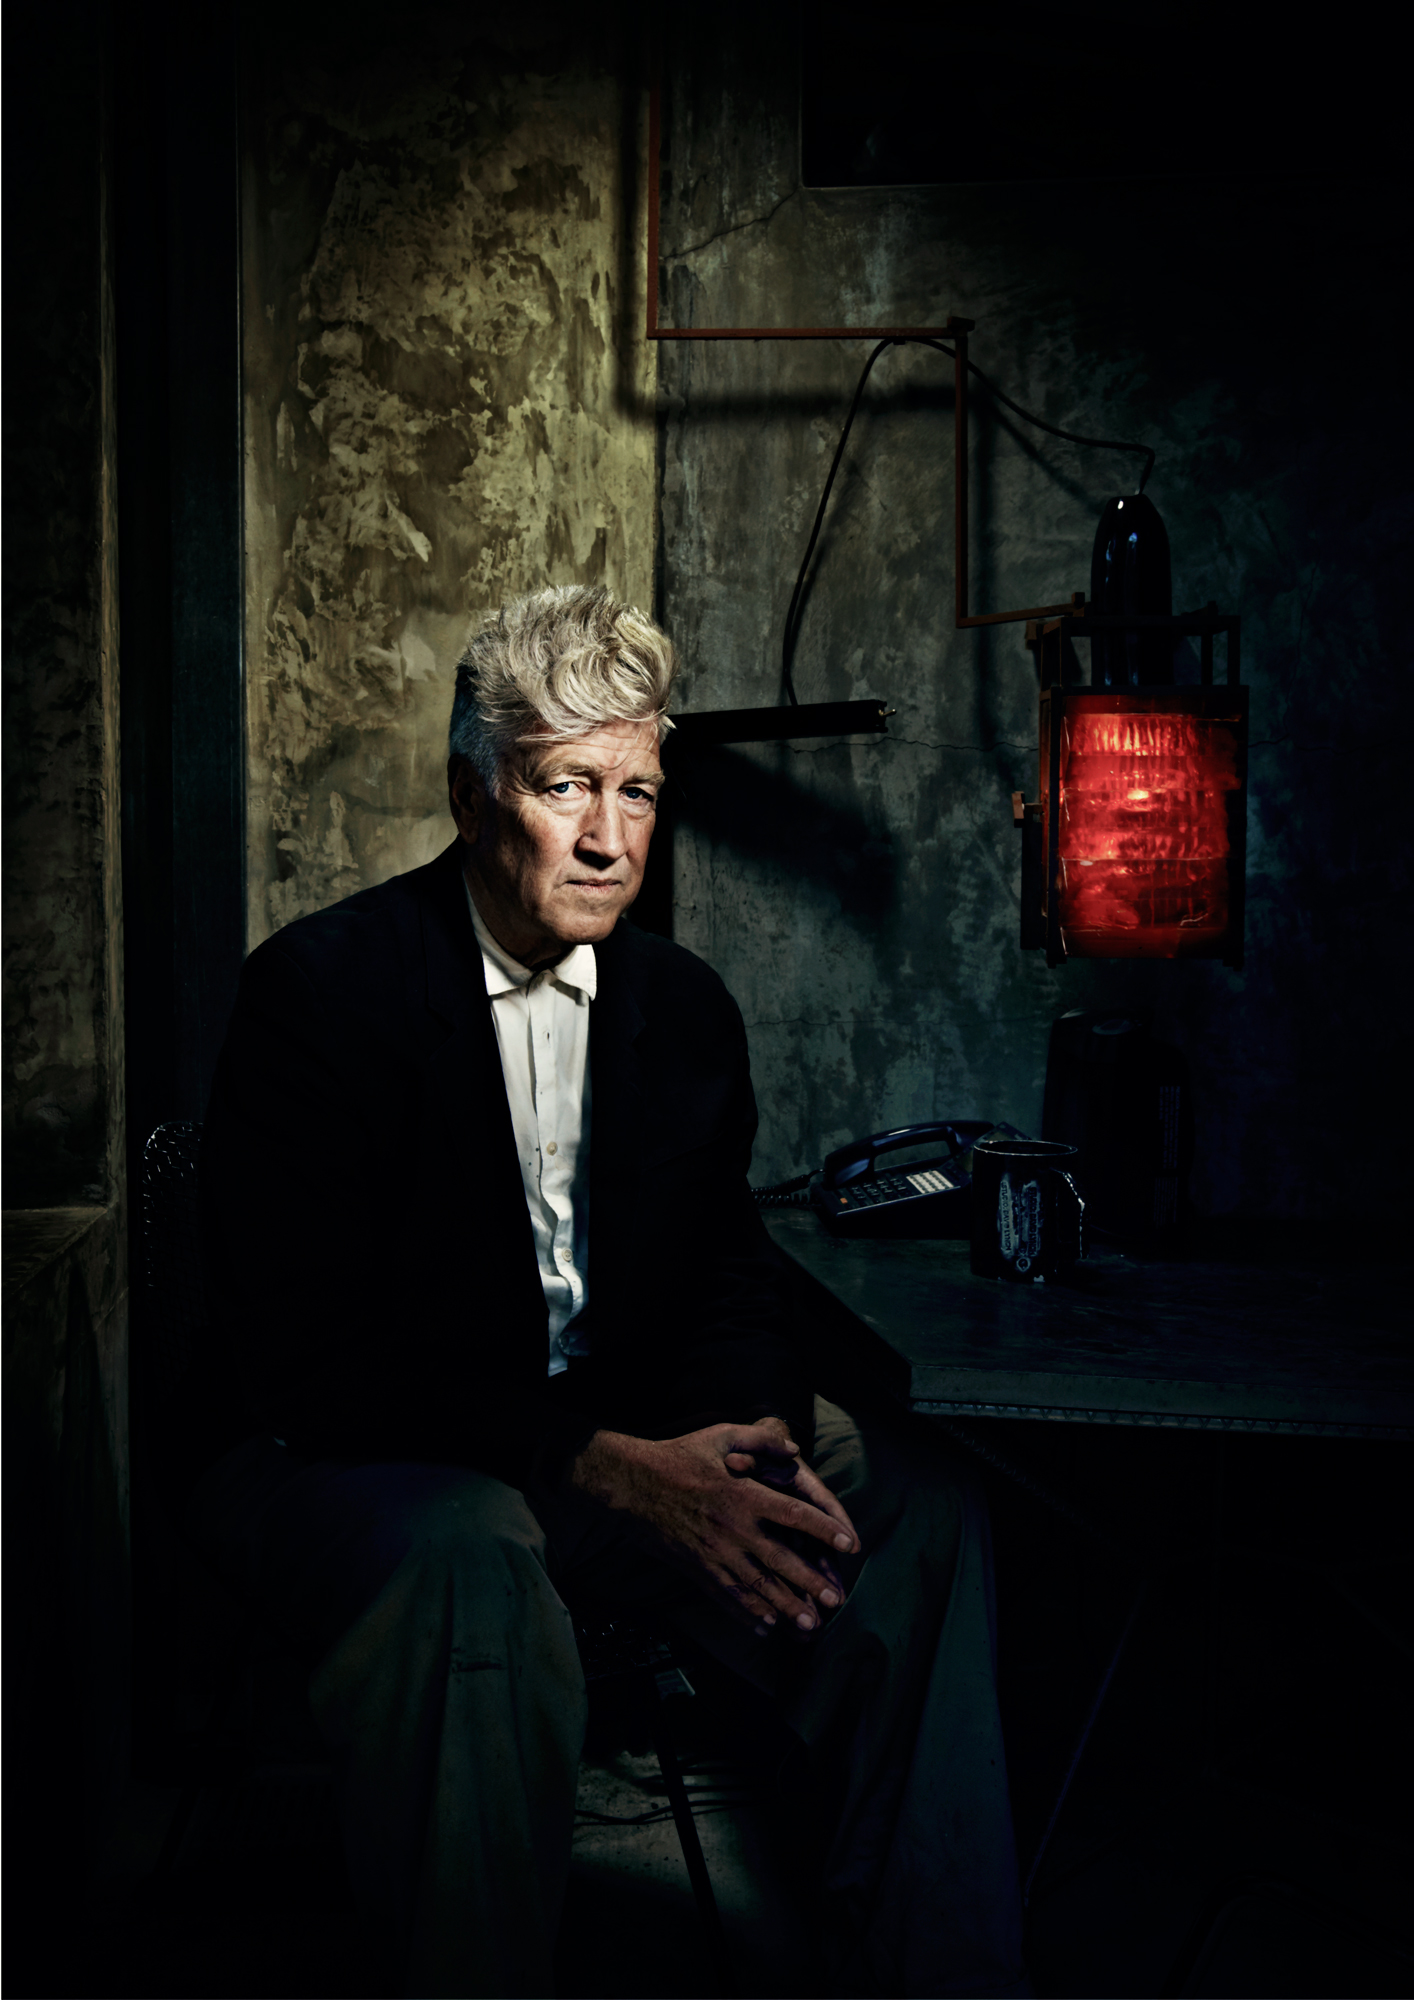 ss_ipa-David-Lynch.jpg